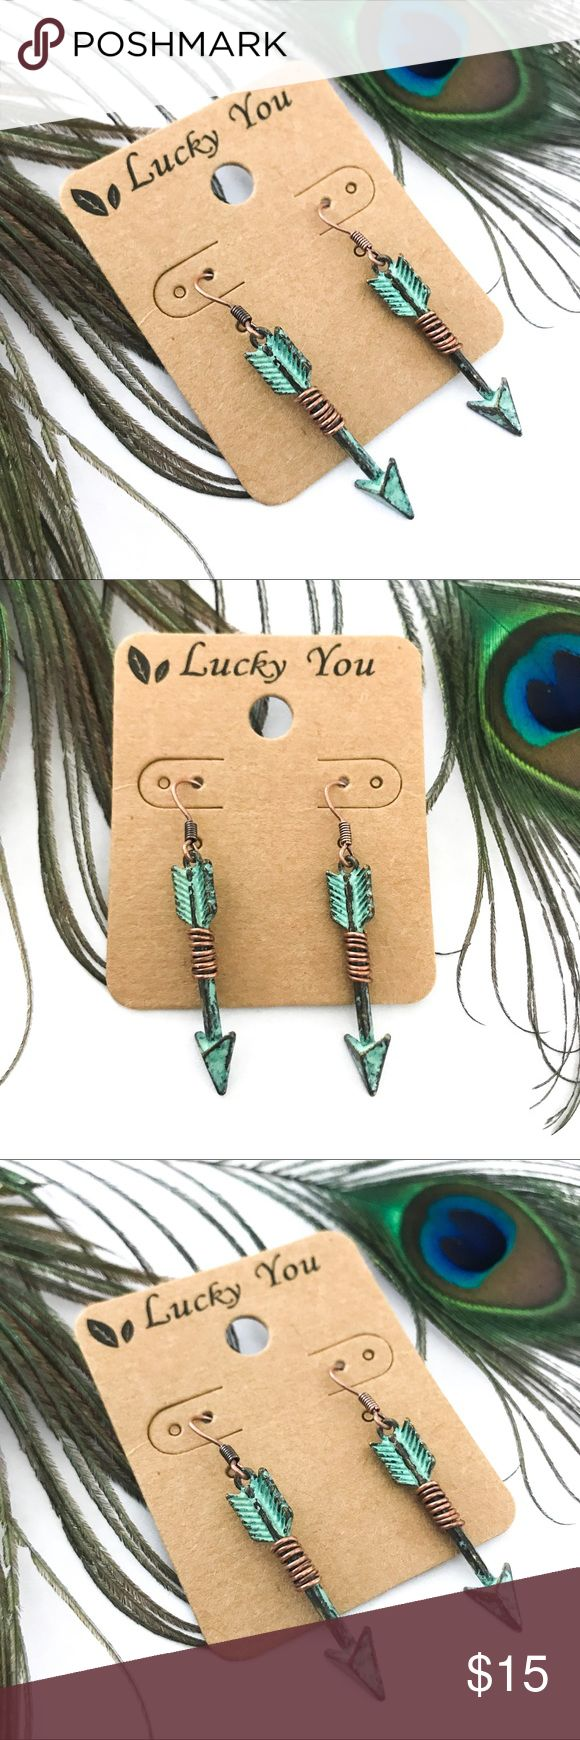 Handmade Oxidized Arrow Dangle Earrings Last one in stock! Brand new with tags! Great quality!   PRODUCT DETAILS: •Size: One size •Colors: Bronze, Copper, Oxidized Green •Made in China  •Dangle Style •Antique Oxidized Coloring •Wire Wrap accents   Tags: native American Indian tribal vintage bow boho bohemian Lucky You Jewelry Earrings